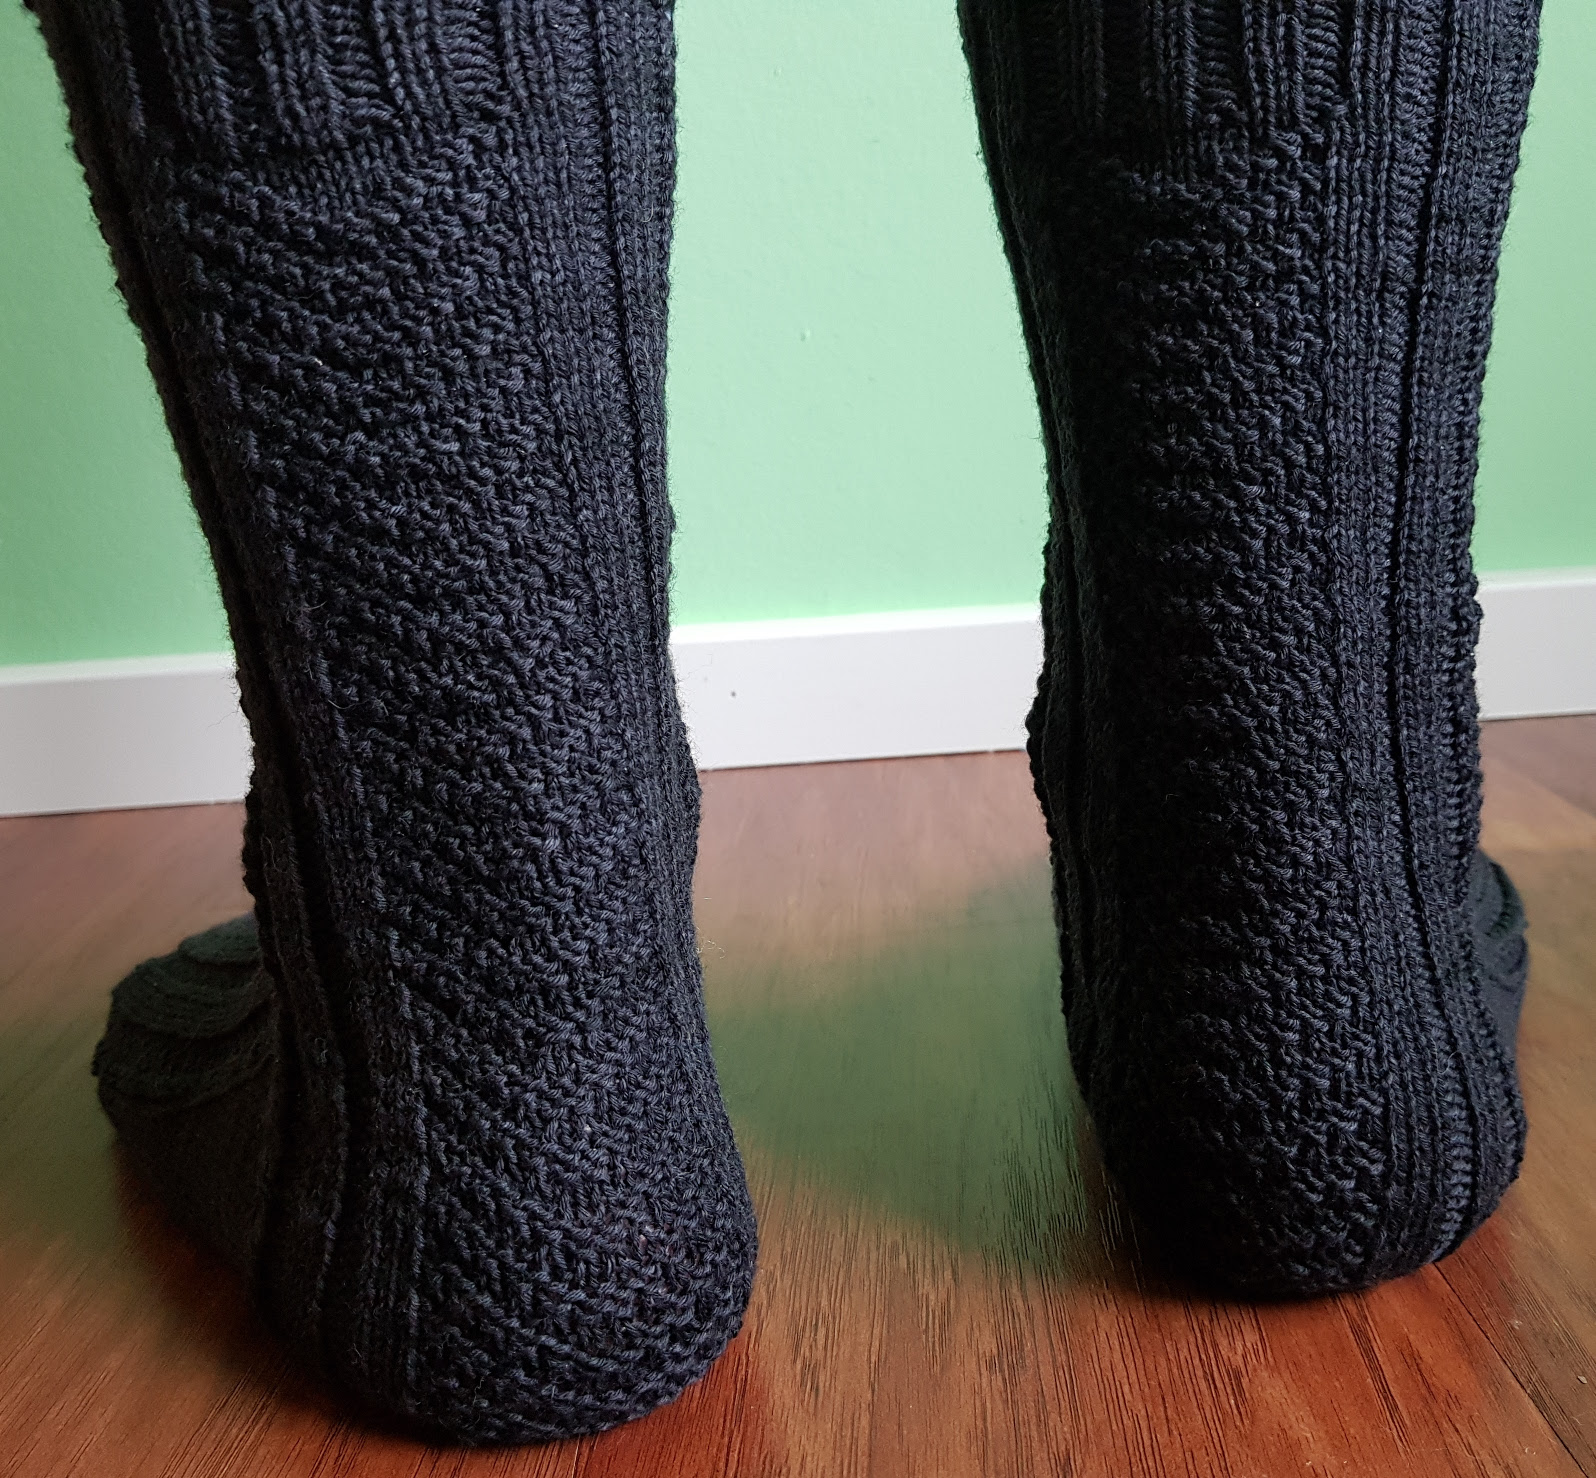 Pretty heel flap - V-Formation free sock knitting pattern by Nadja Senoucci